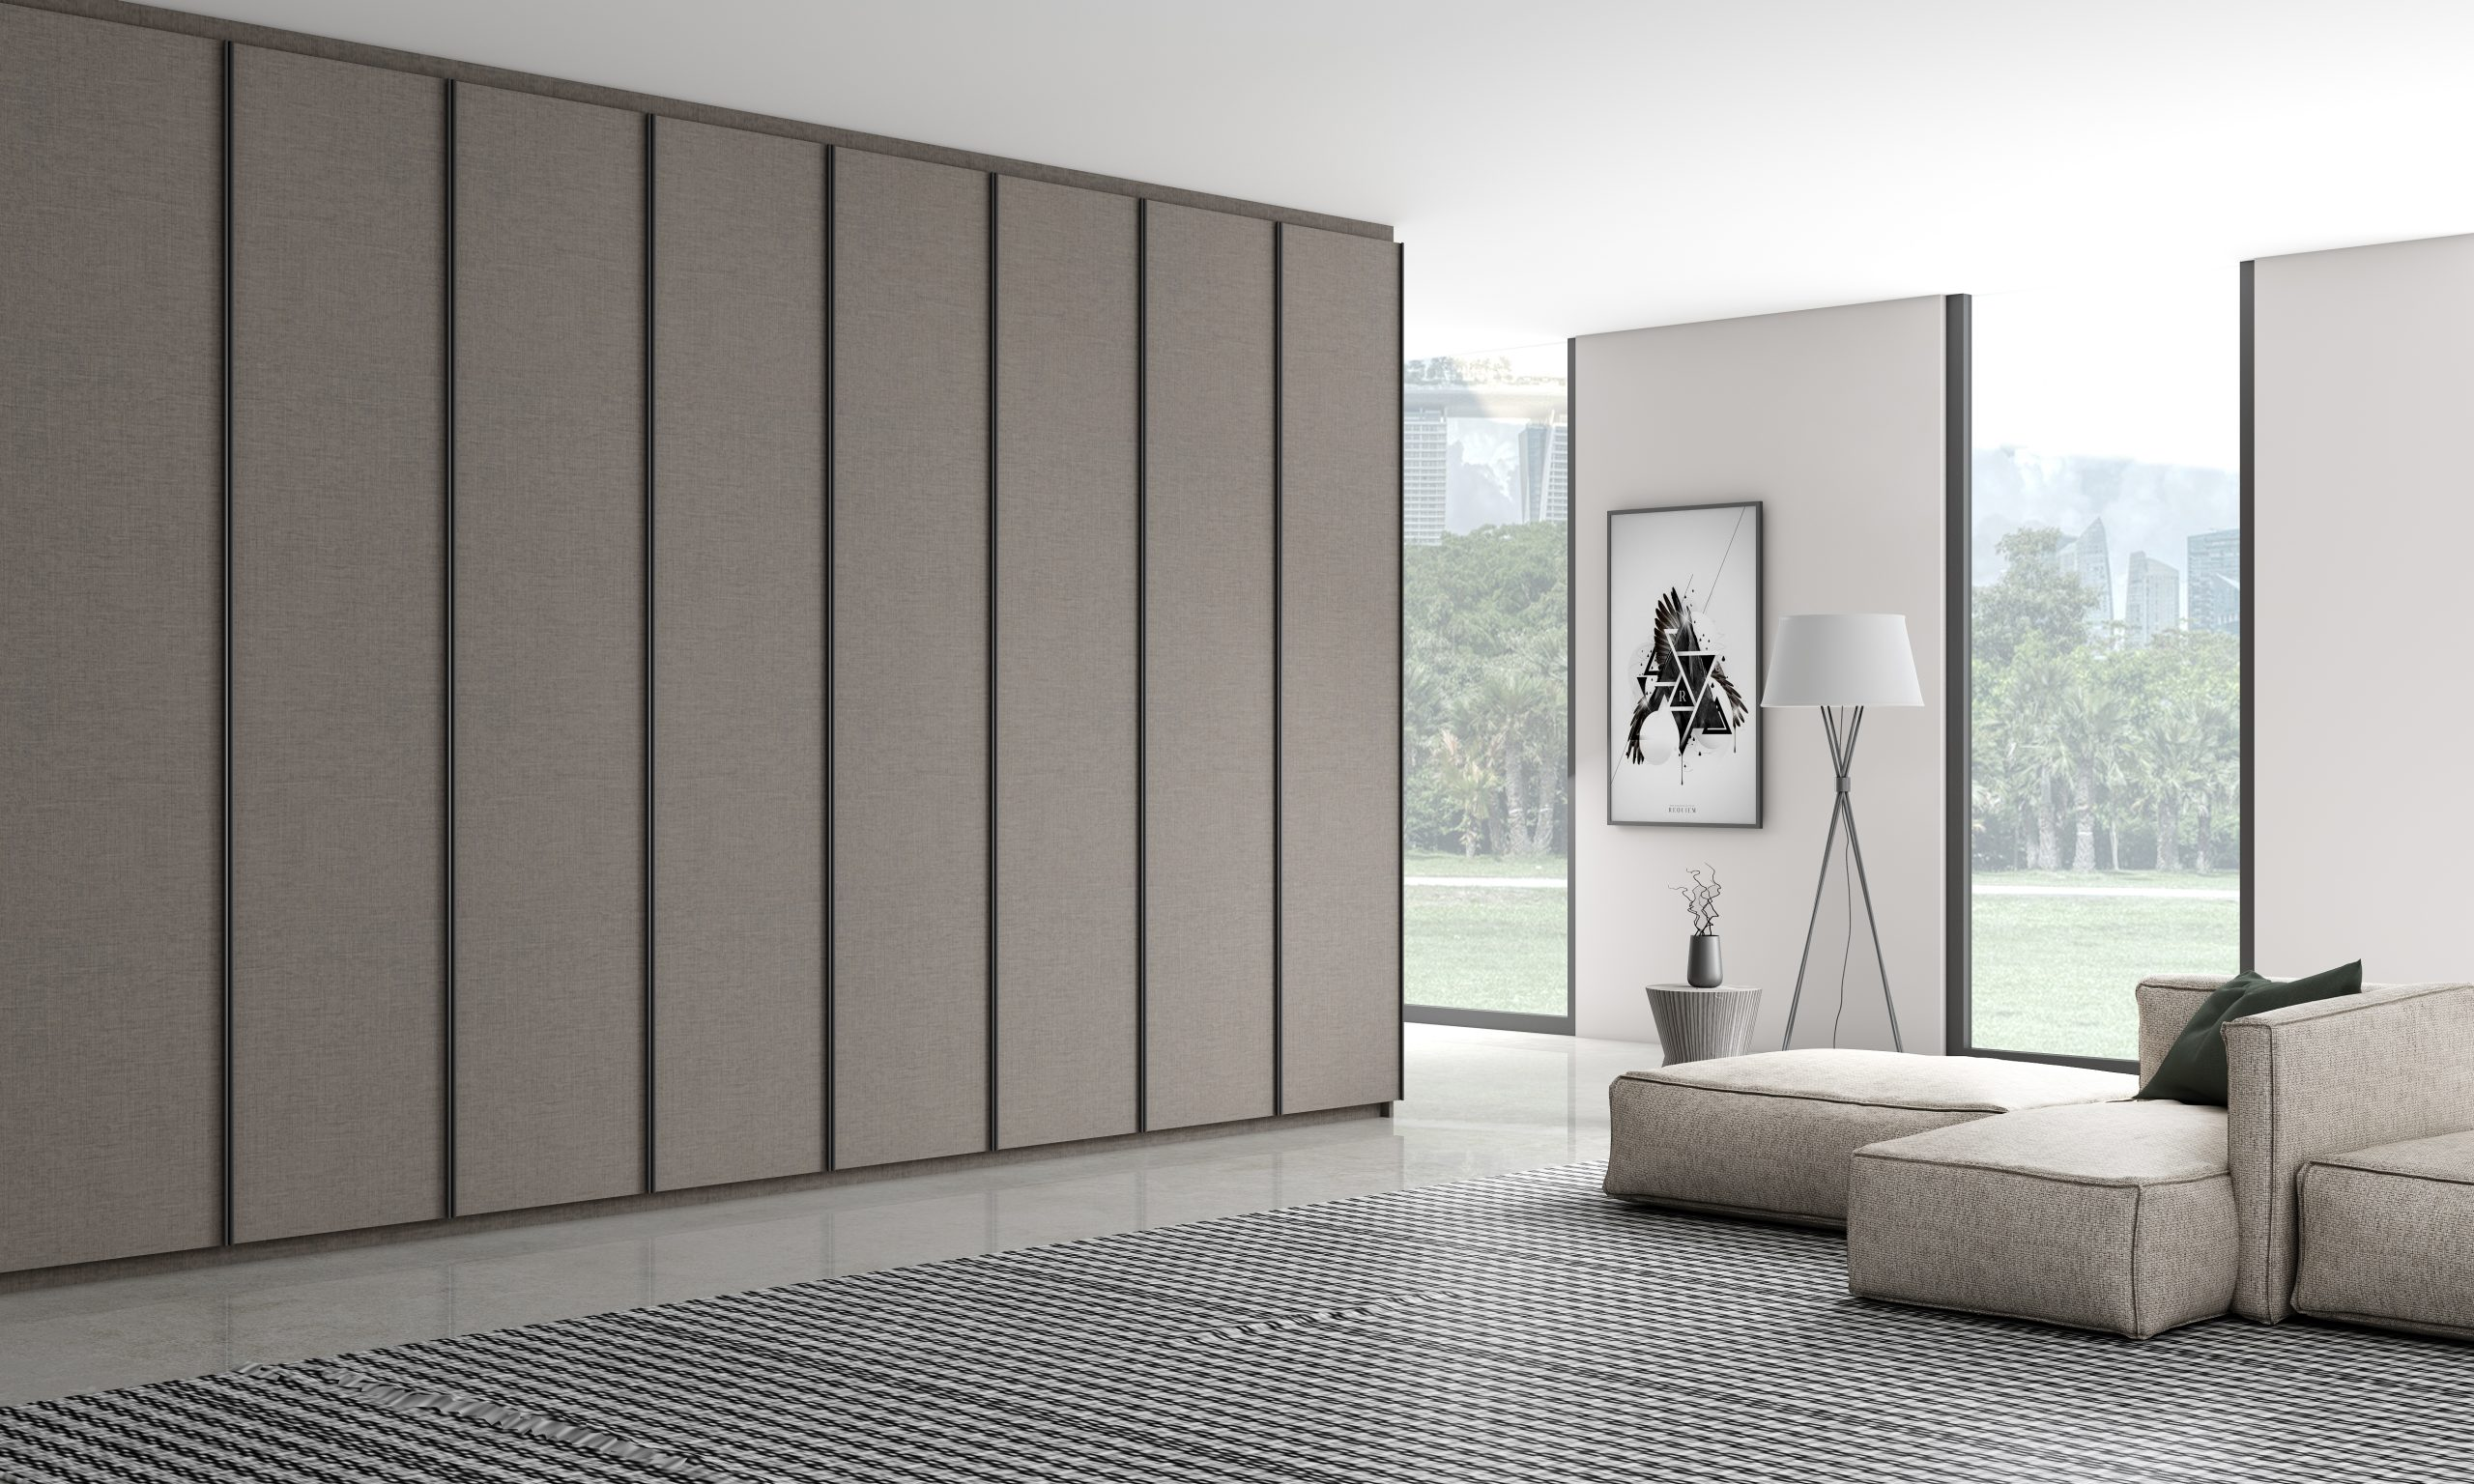 Linear wood fitted hinged wardrobe with aluminium handle profile in anthracite linen finish